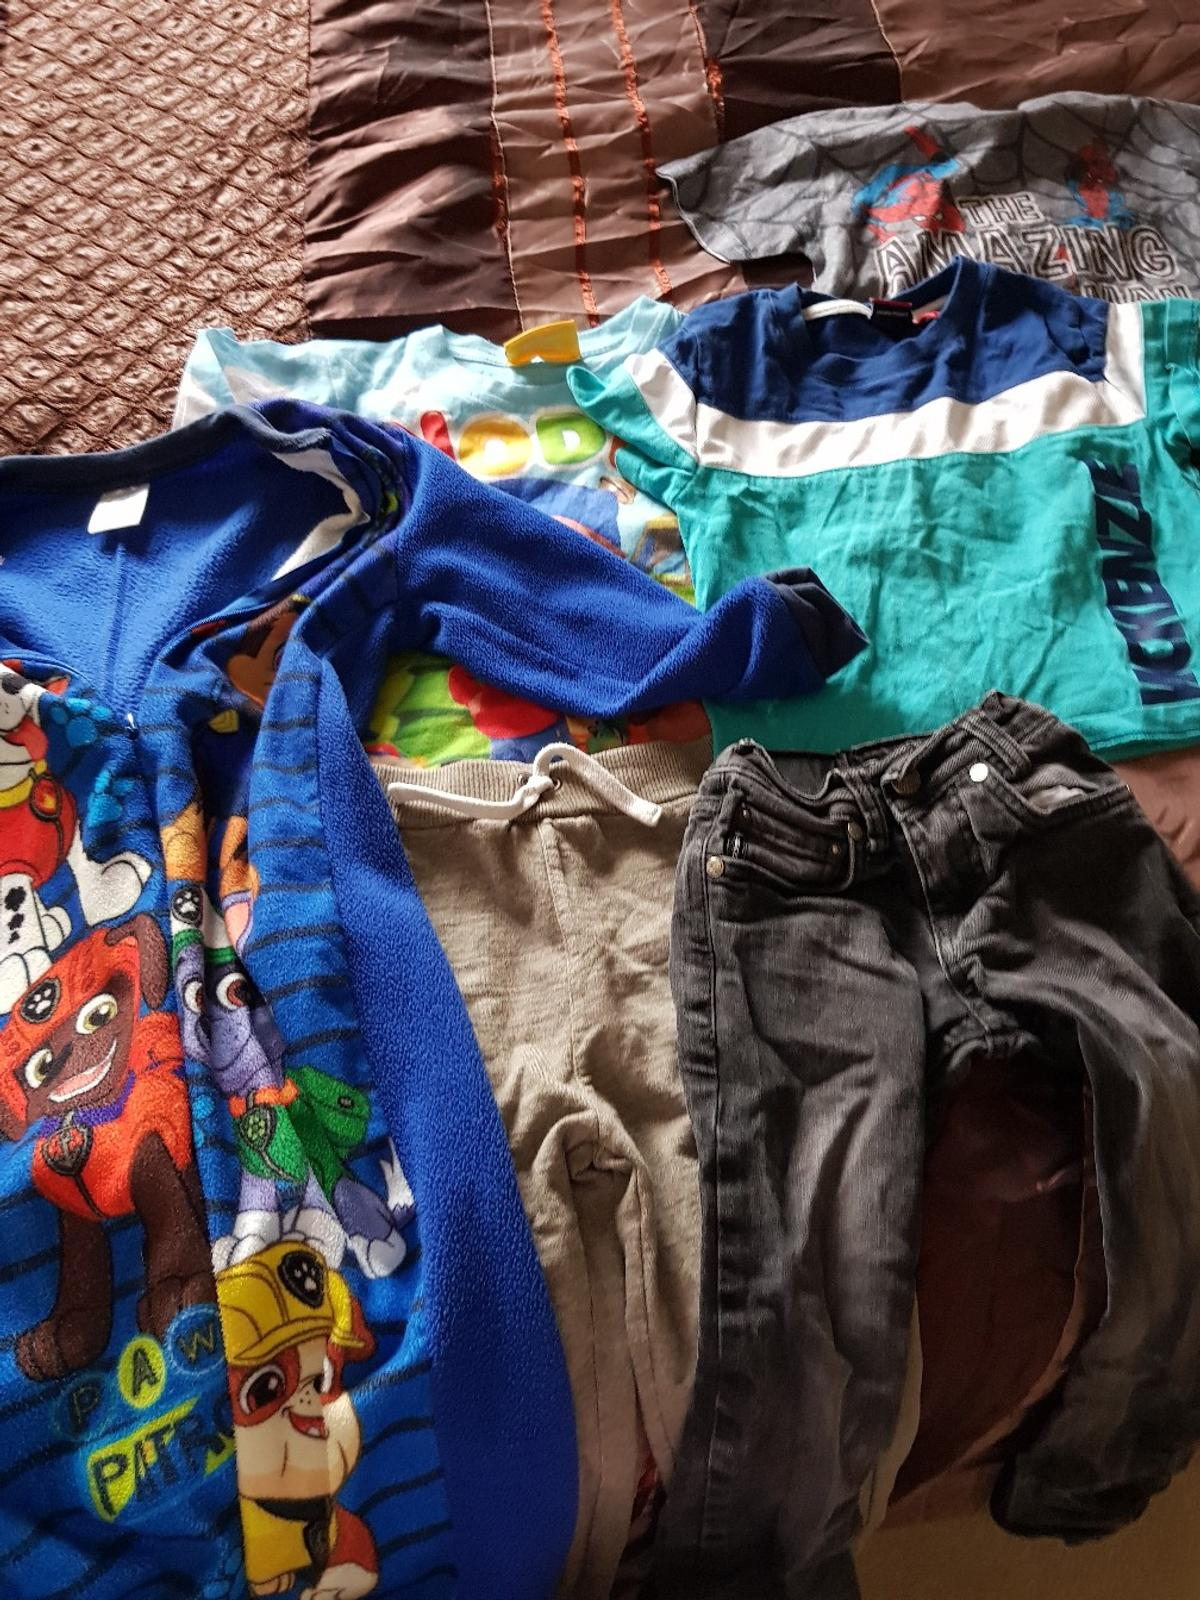 88988887f5c54 boys clothes in WV14 Wolverhampton for free for sale - Shpock